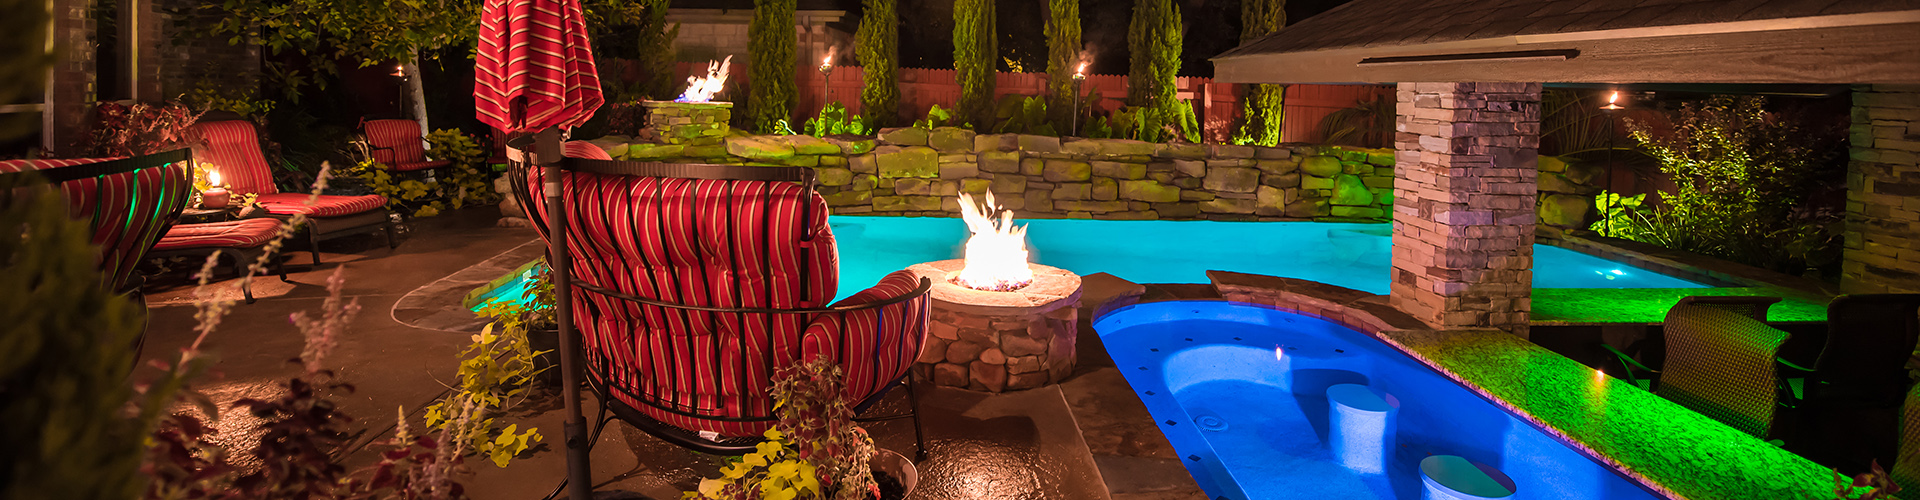 simple additions to transform your backyard space this summer